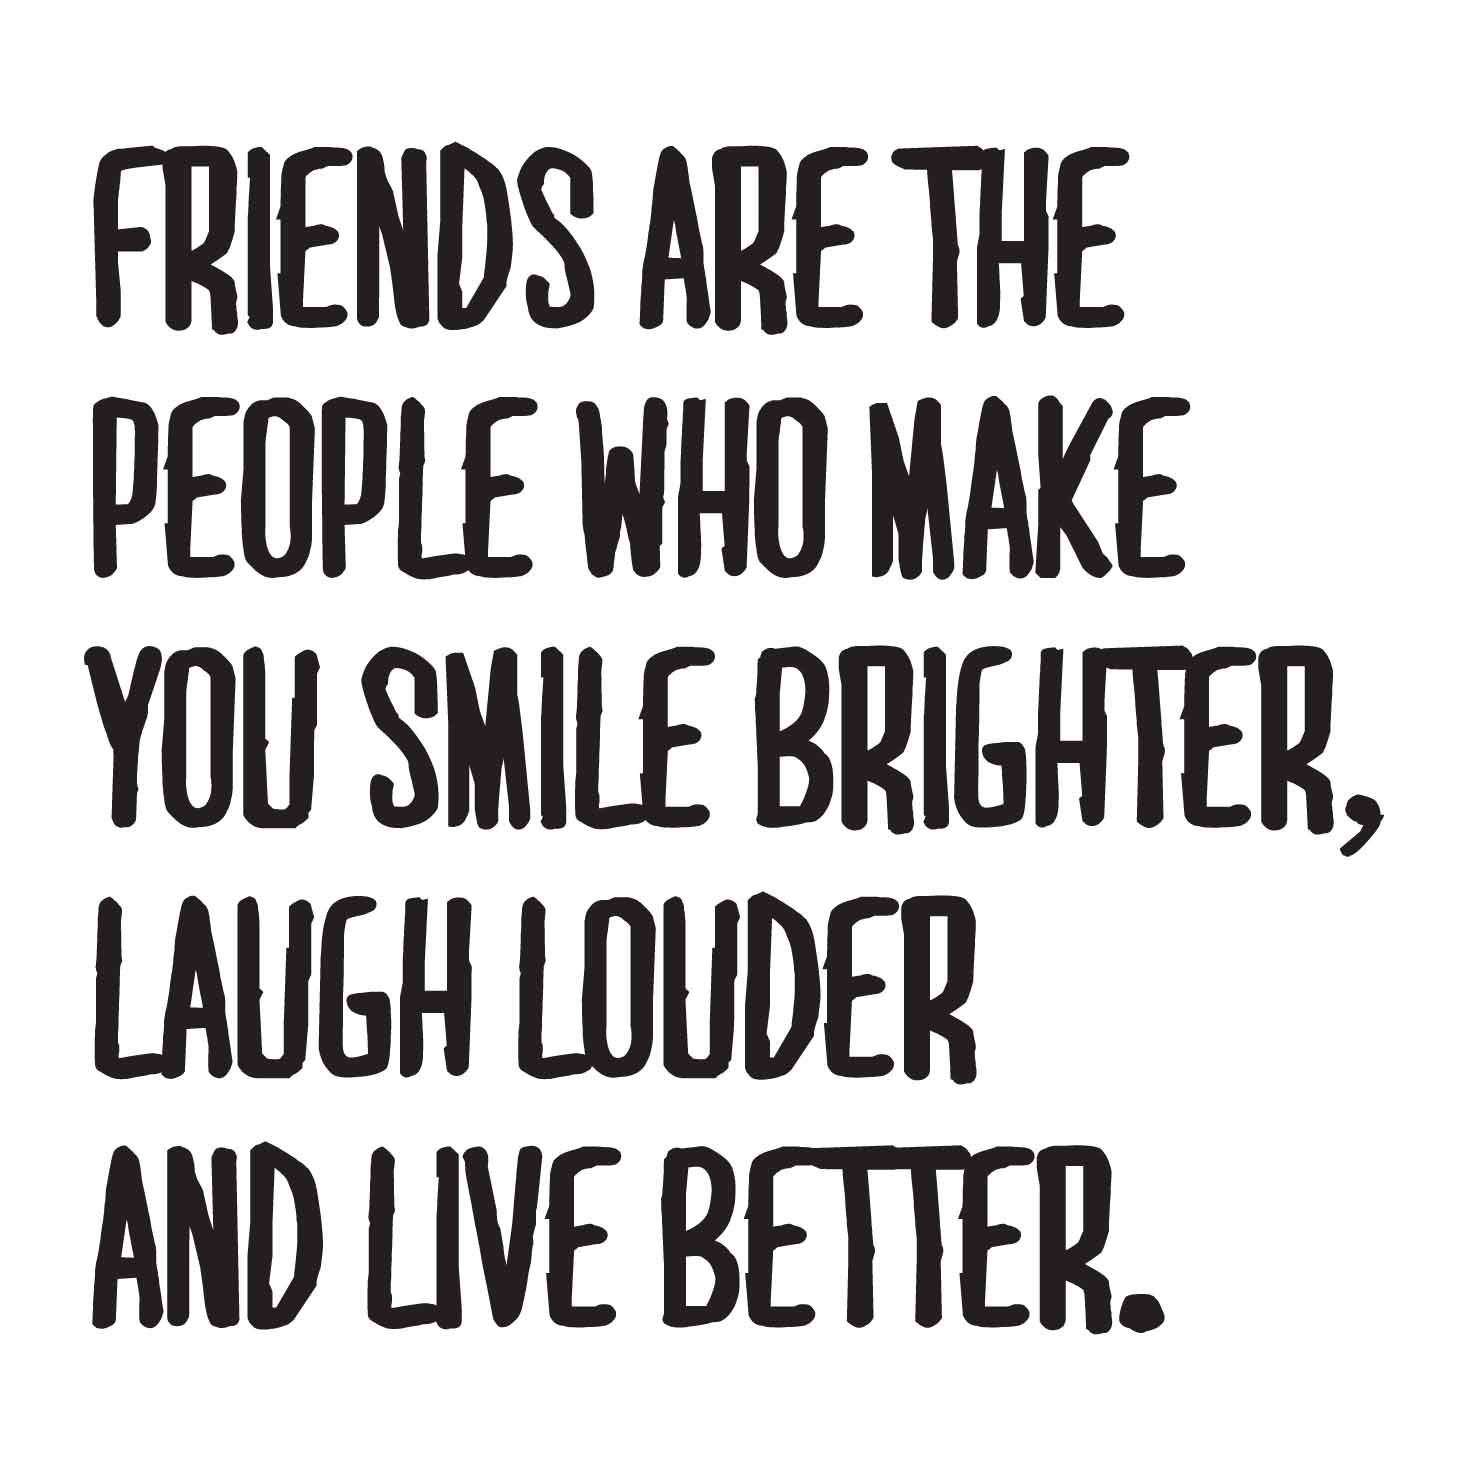 25 Friendship Quotes True Friends Quotes Friends Quotes Funny Bright Quotes